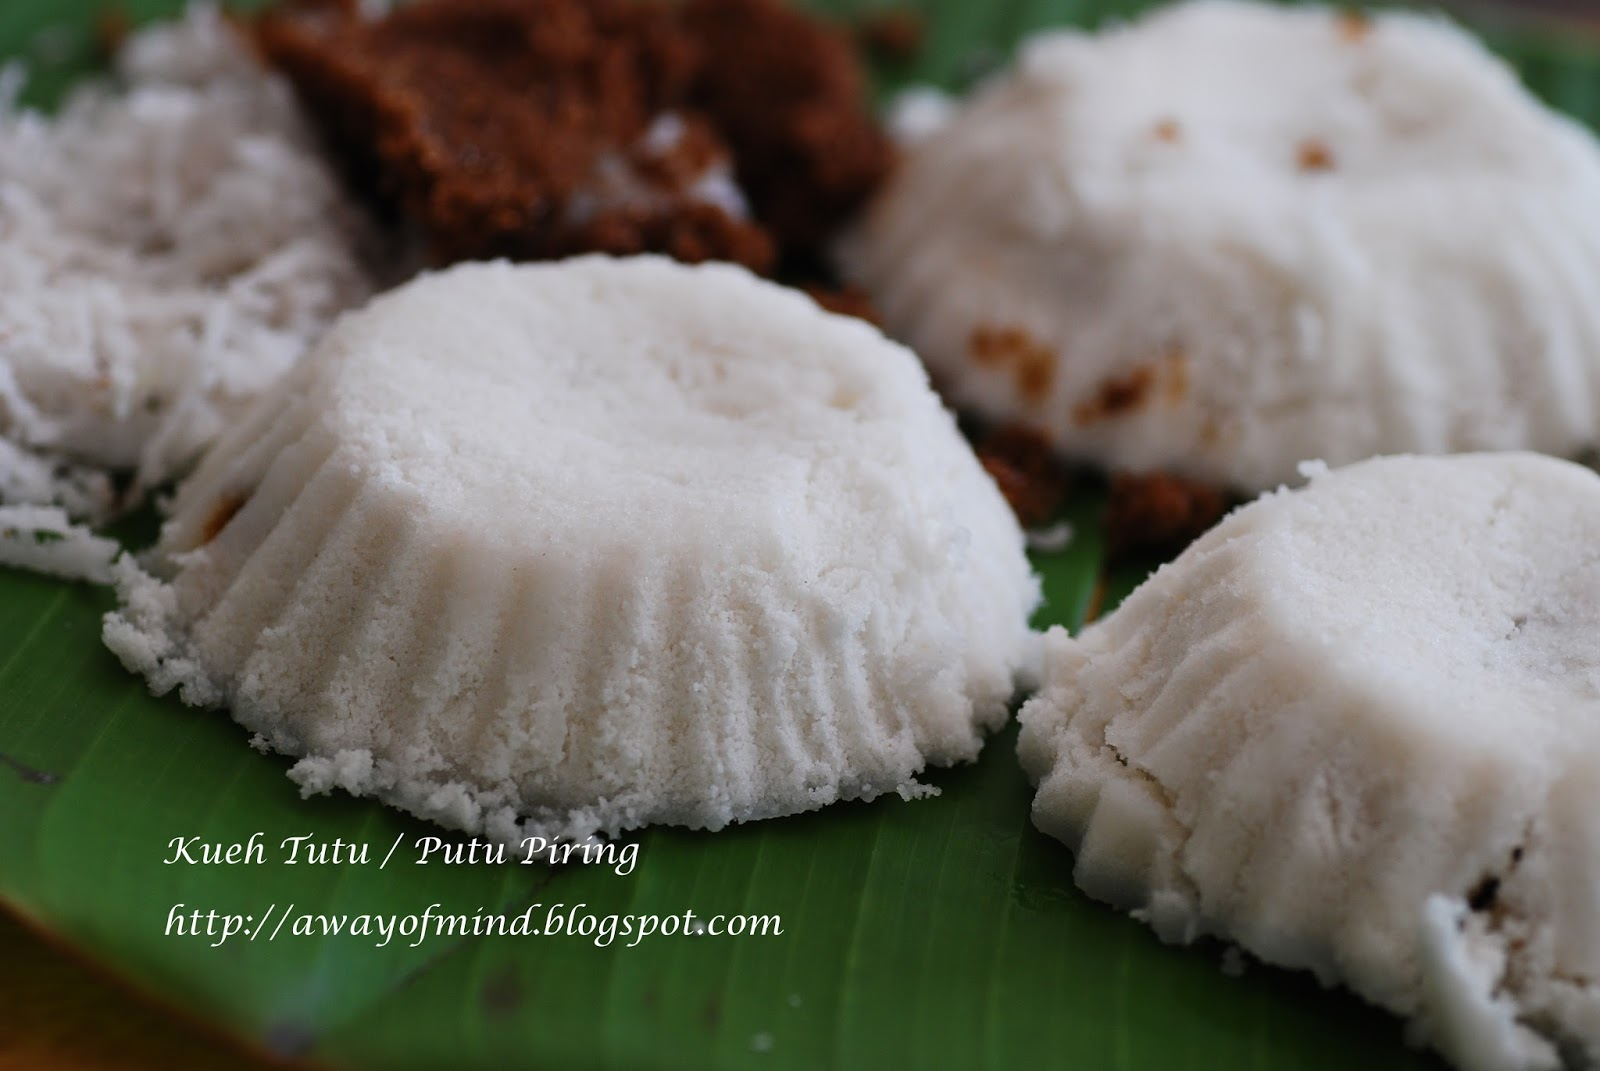 3 If You Do It Right The Kueh Tutu Will Stay Soft And Not Turn Hard I Checked My Last Piece Of After 4 Hours Stays Fluffy